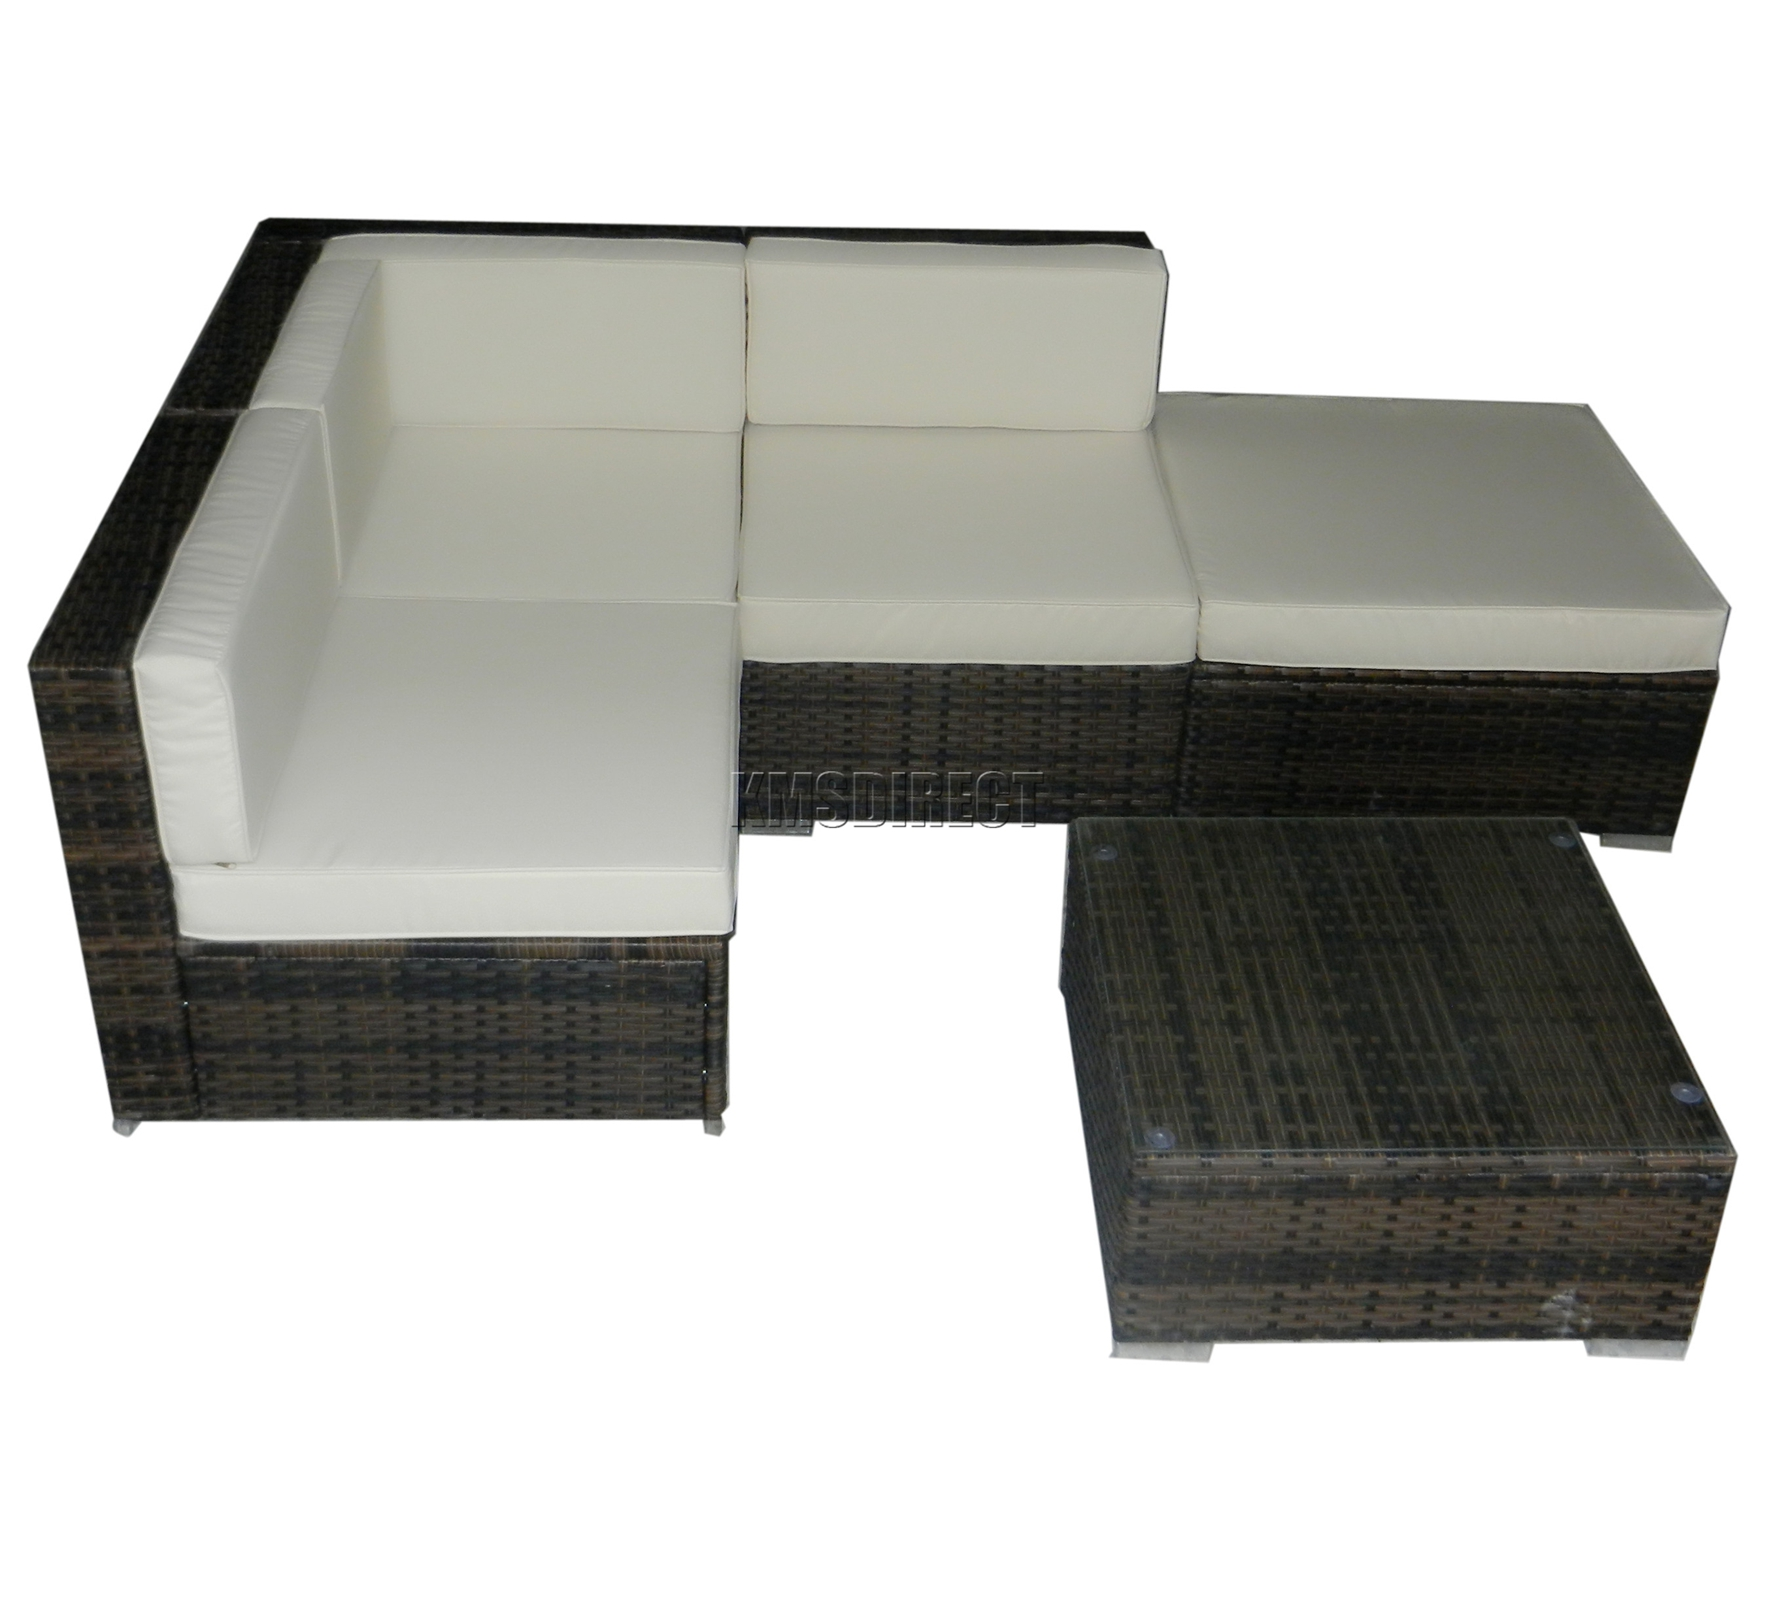 Foxhunter rattan muebles set tabla jard n patio al aire - Muebles rattan exterior ...